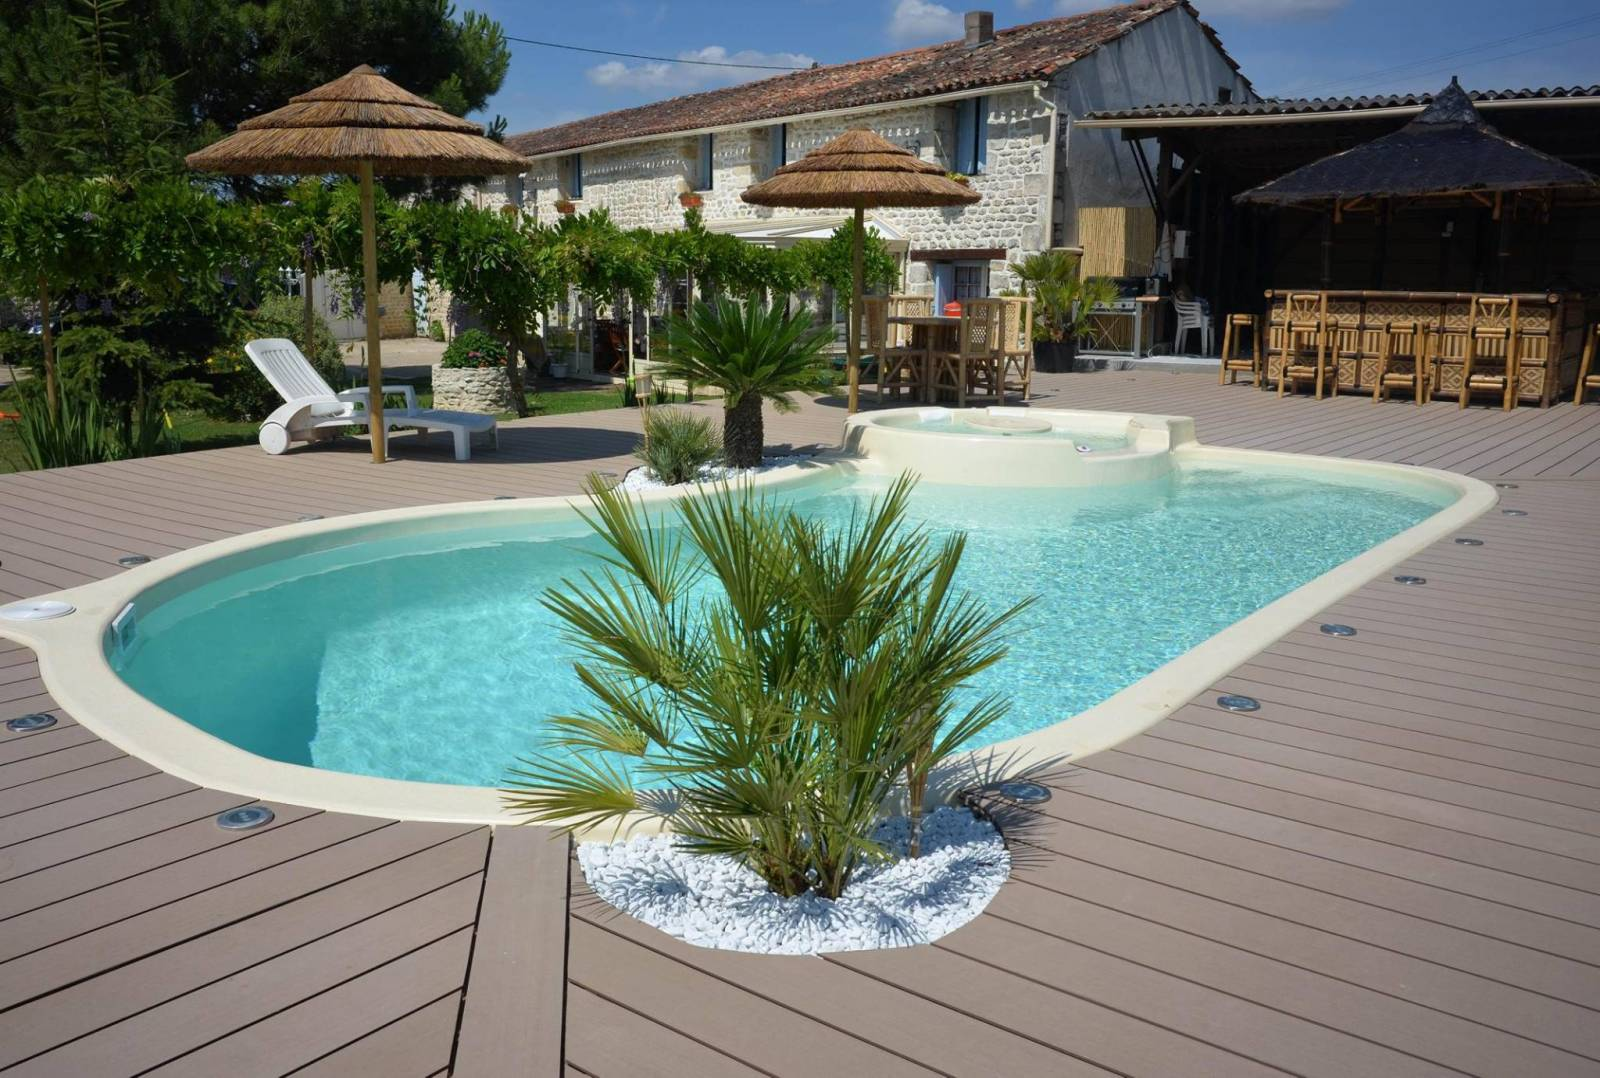 Fabricant de piscines coque montpellier freedom piscines for Pose piscine coque